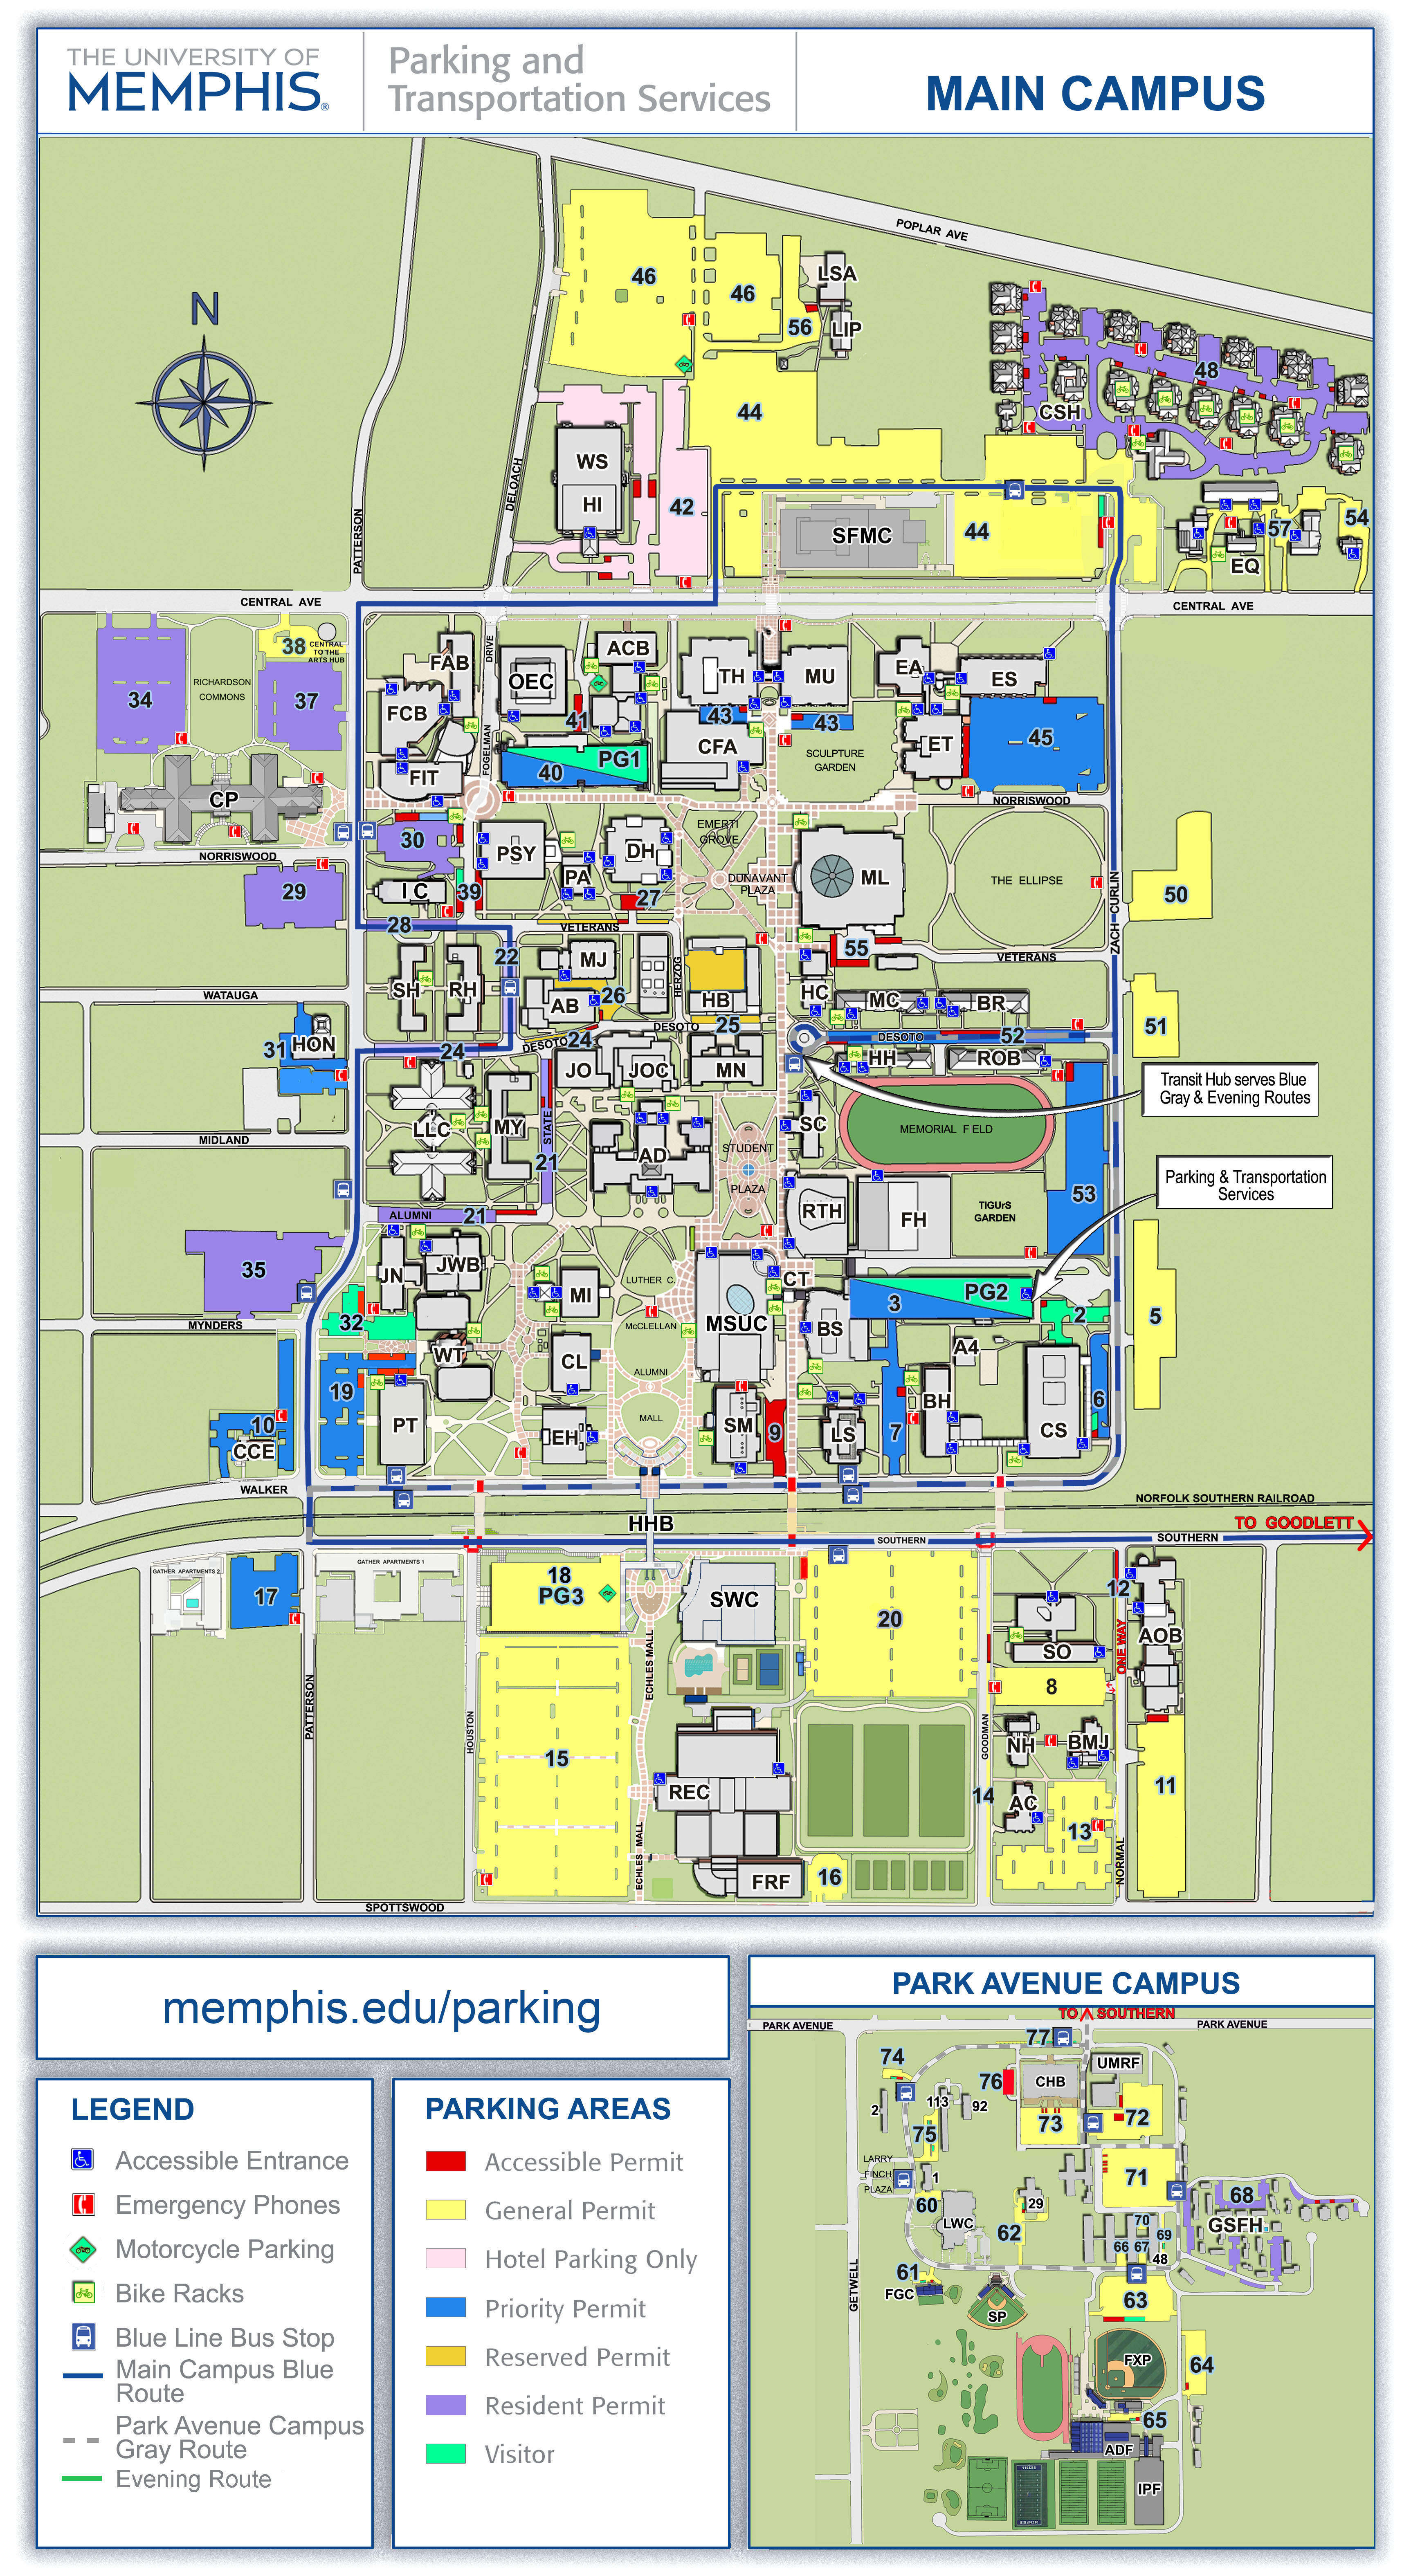 Permit and Other Parking Parking Transportation Services – Map University